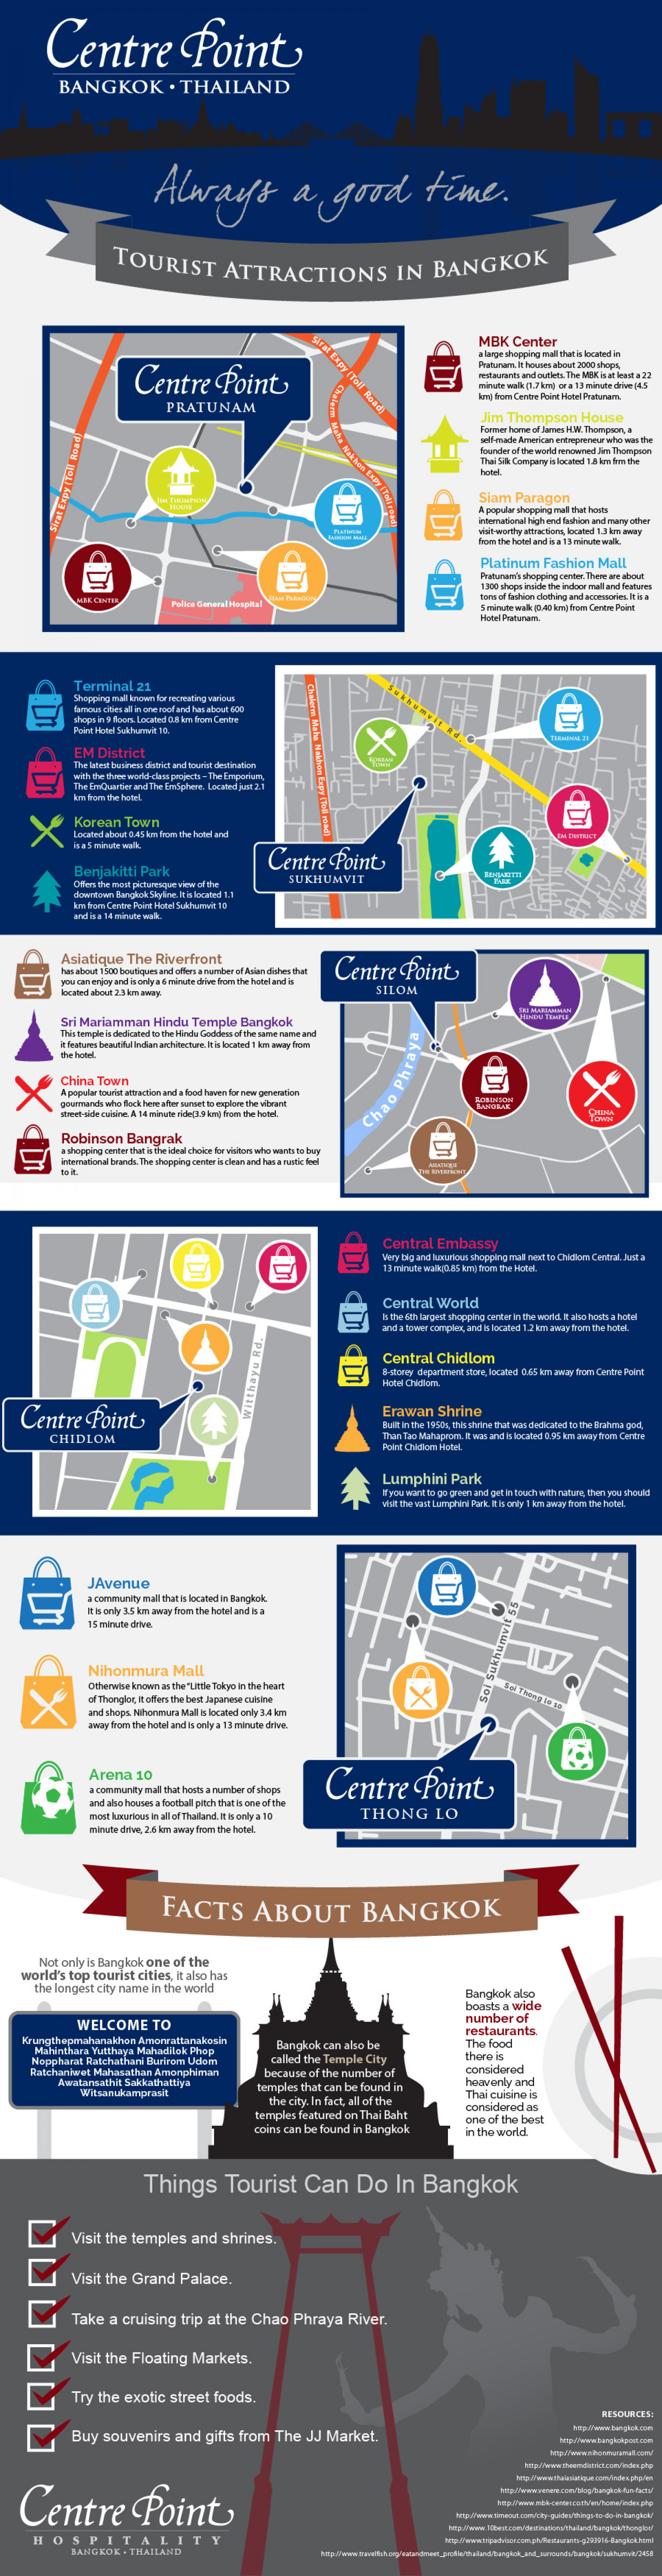 List of Tourist Attractions in Bangkok Infographic